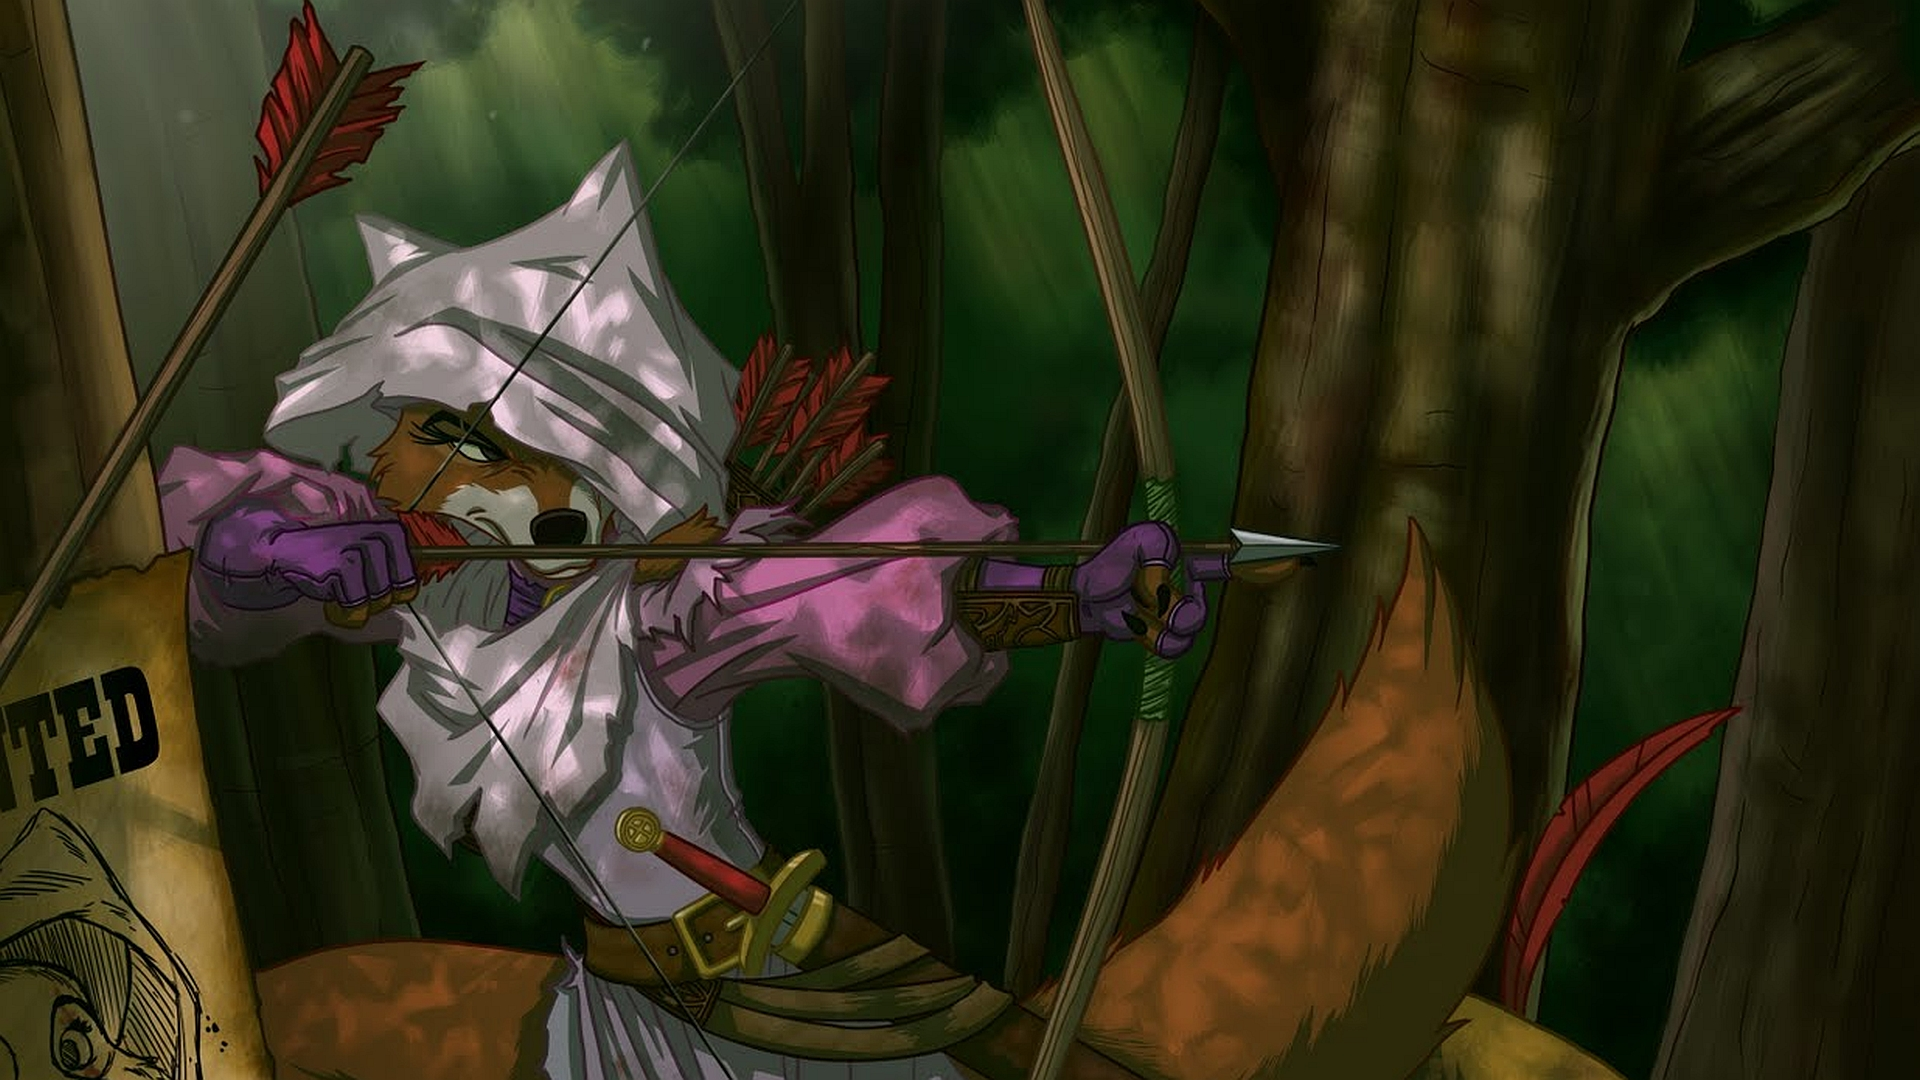 Robin hood full hd wallpaper and background image - Hood cartoon wallpaper ...